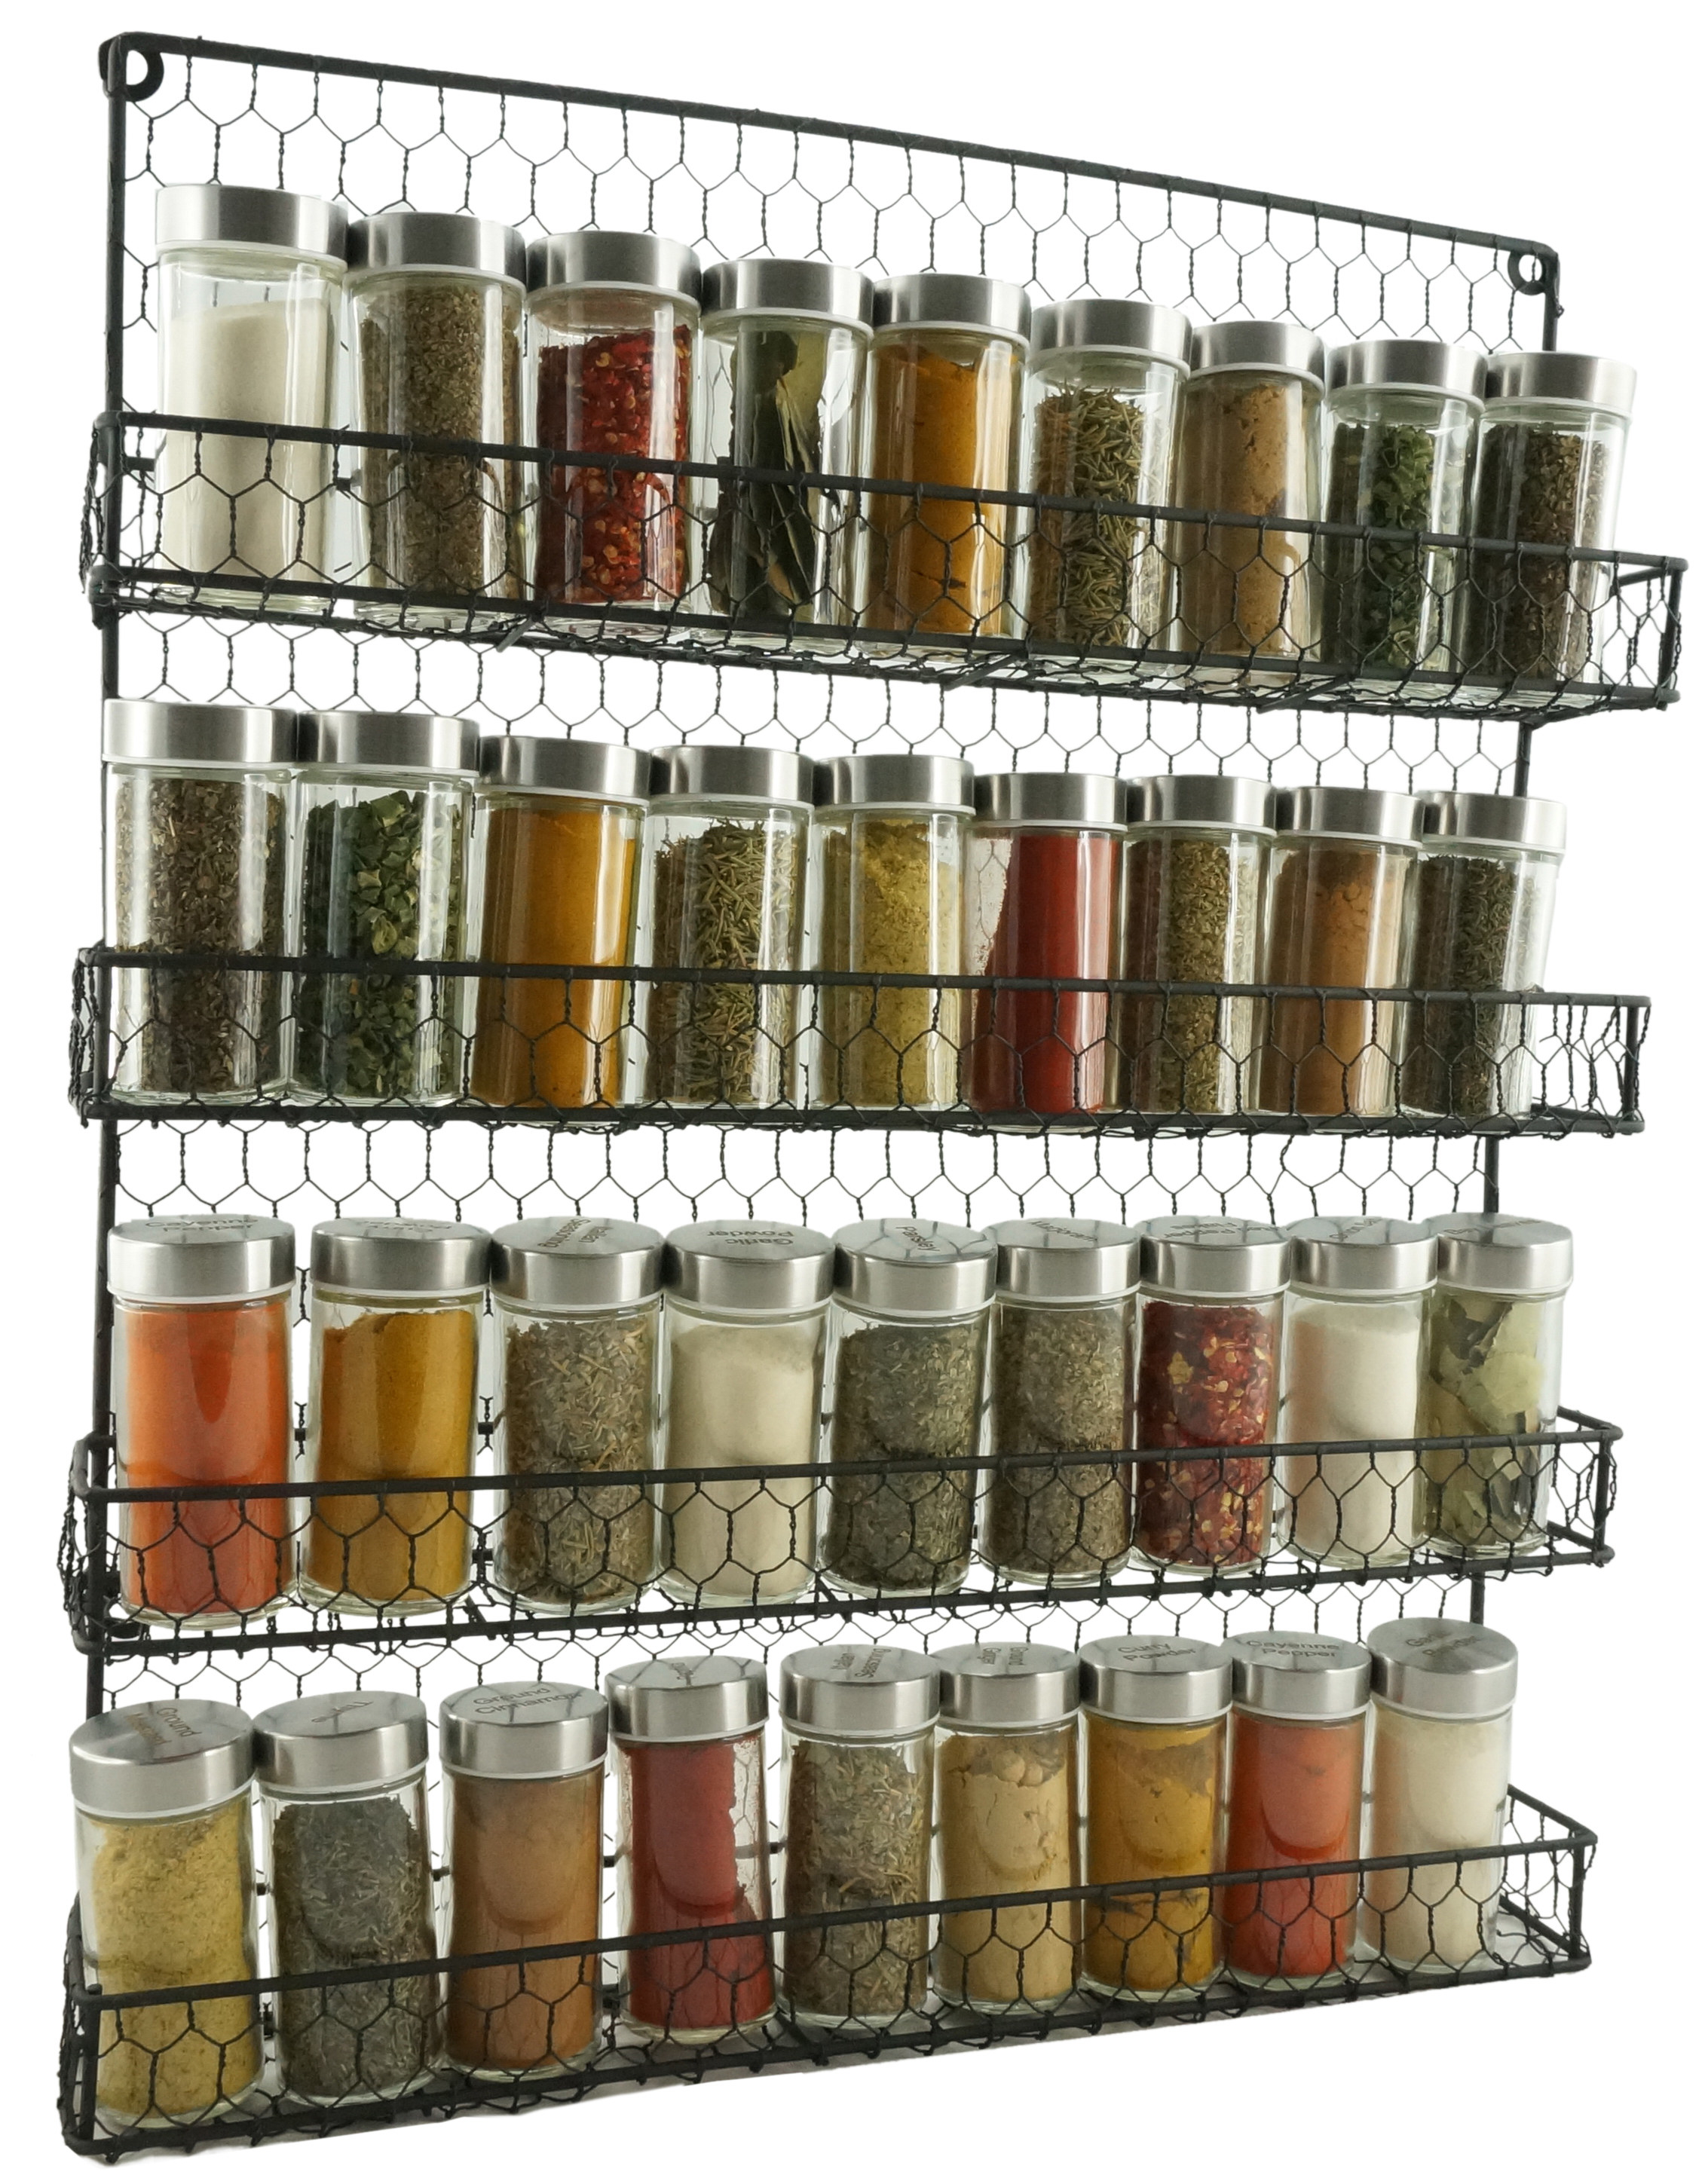 the wall-mounted spice rack holding four rows of nine spice each